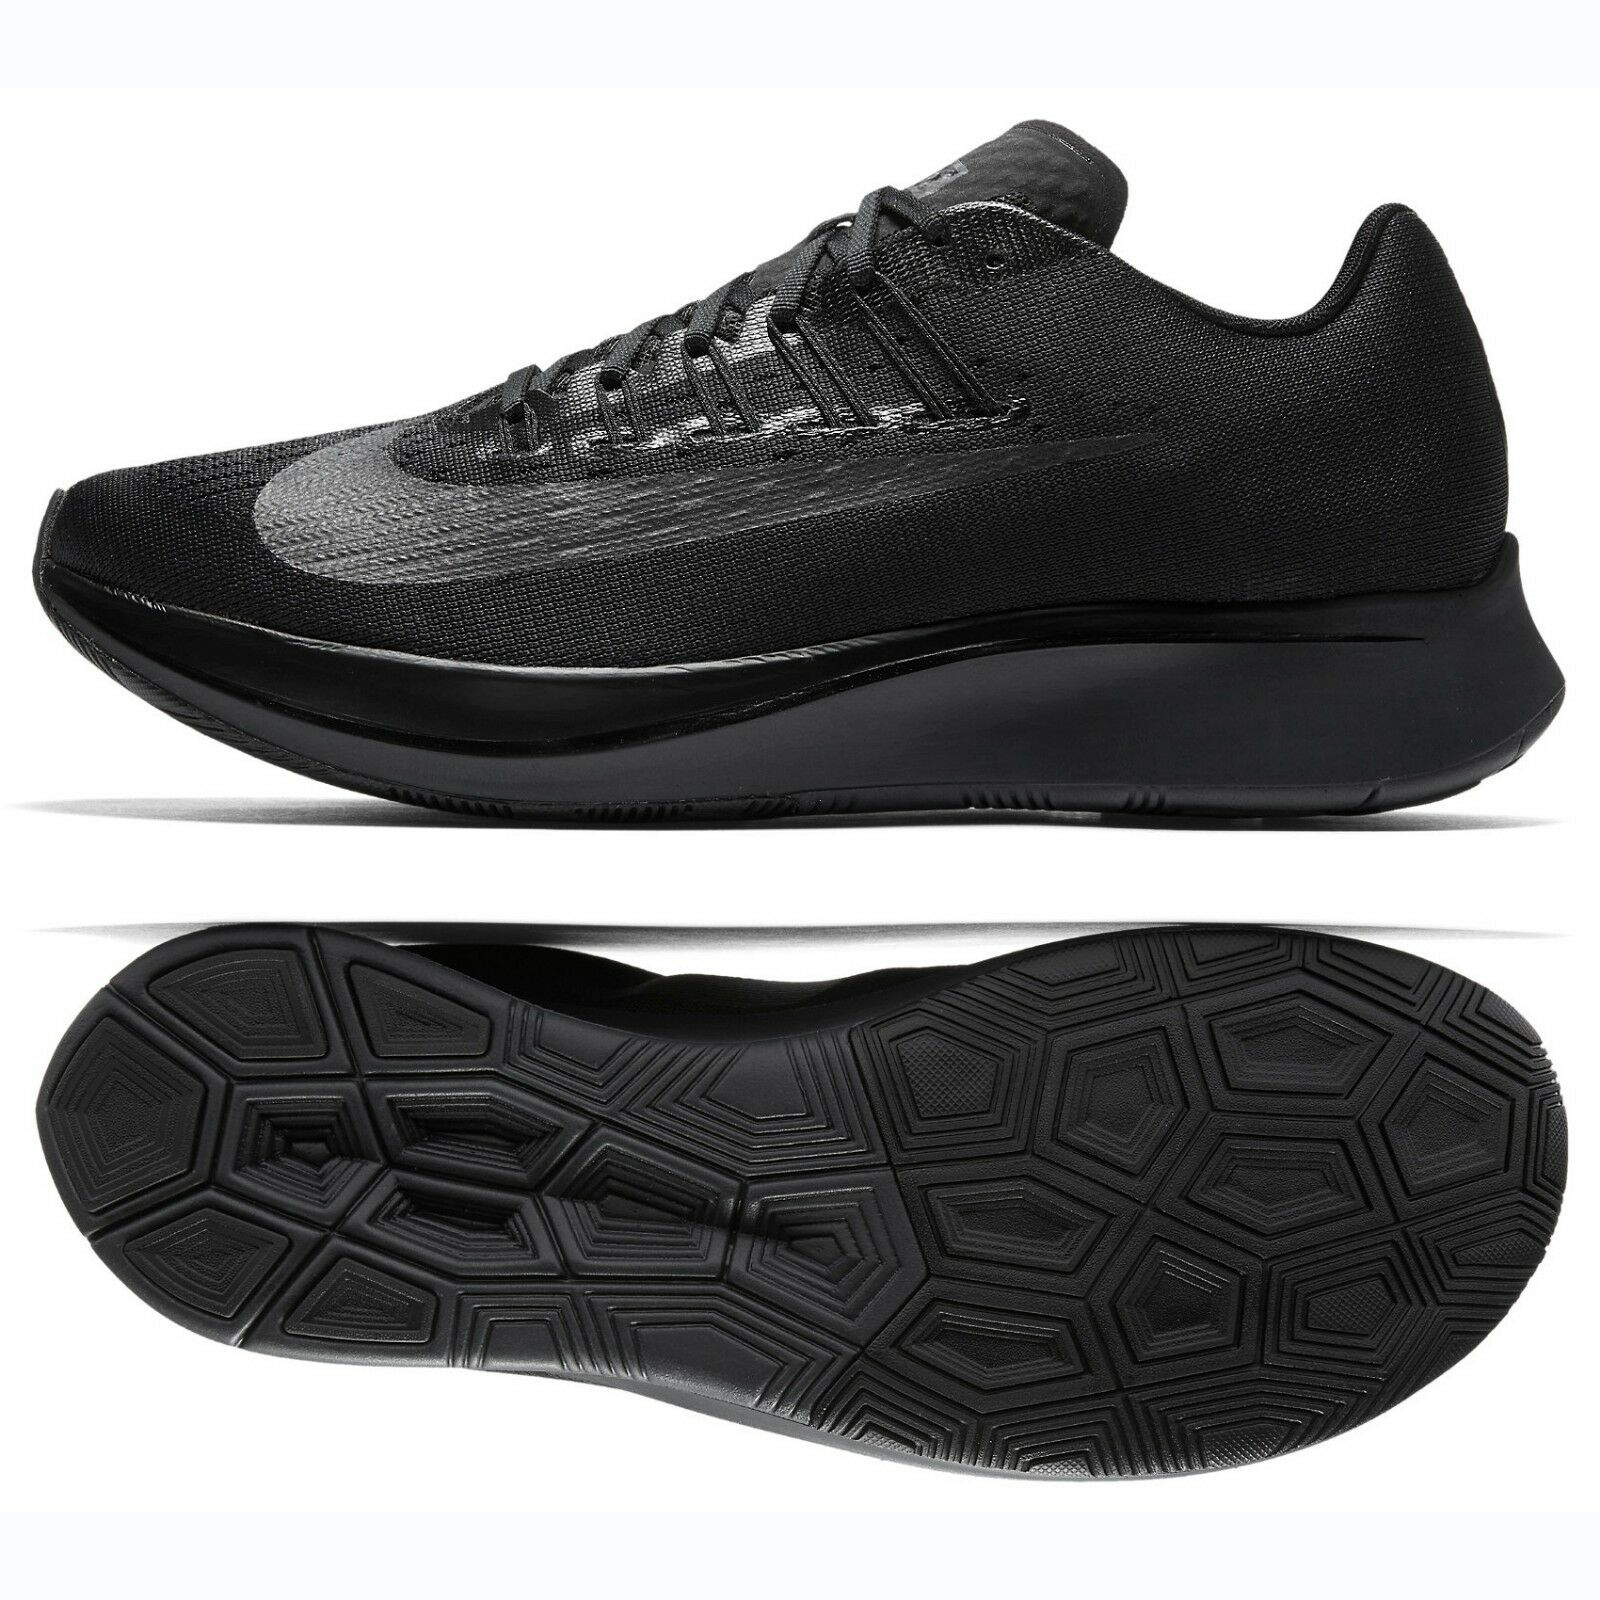 Nike Zoom Fly 880848 003 Black/Anthracite Men's Running Shoes